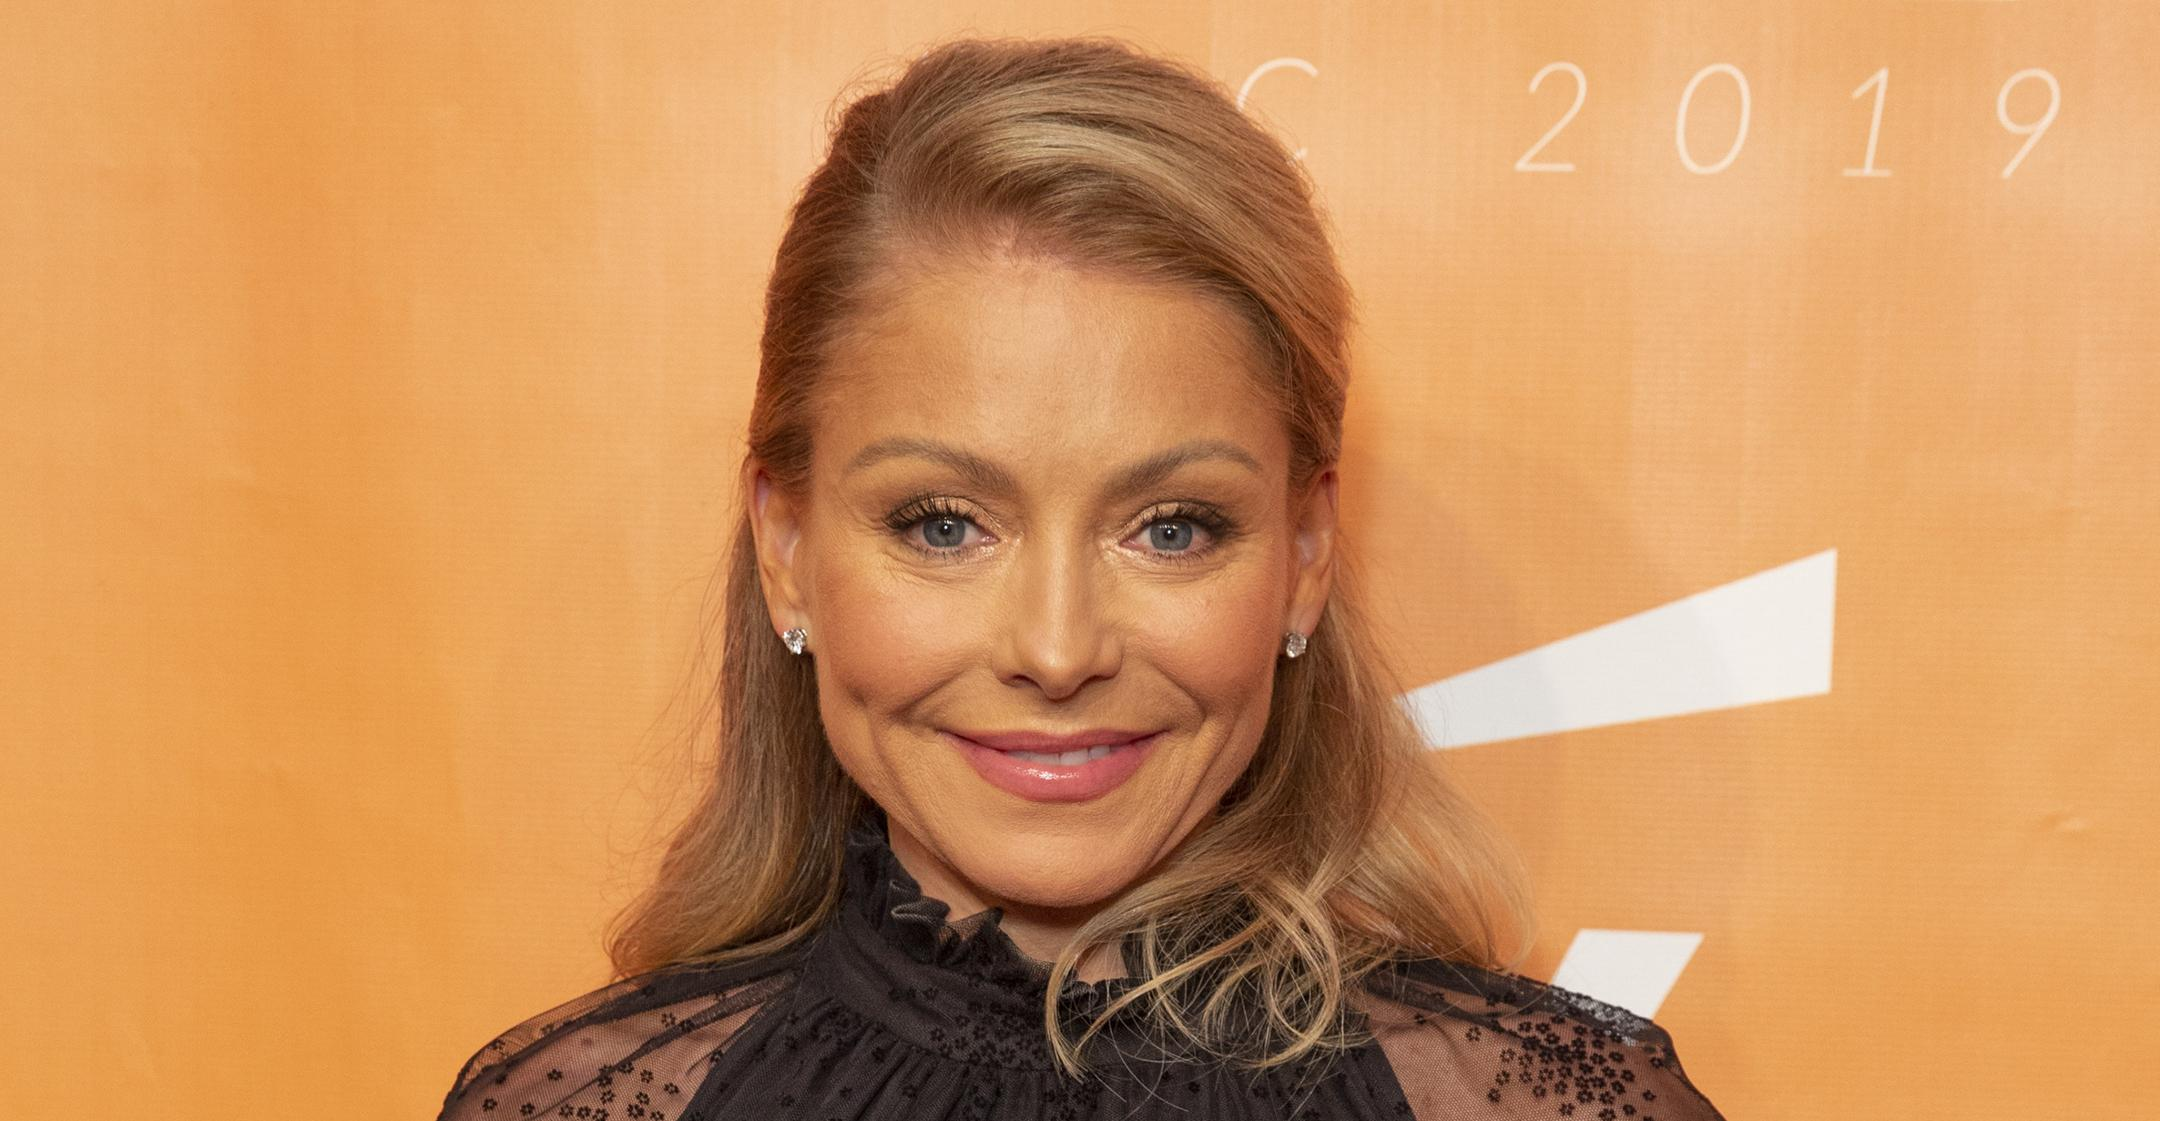 kelly ripa knows she can be polarizing but she always stays true to authentic self